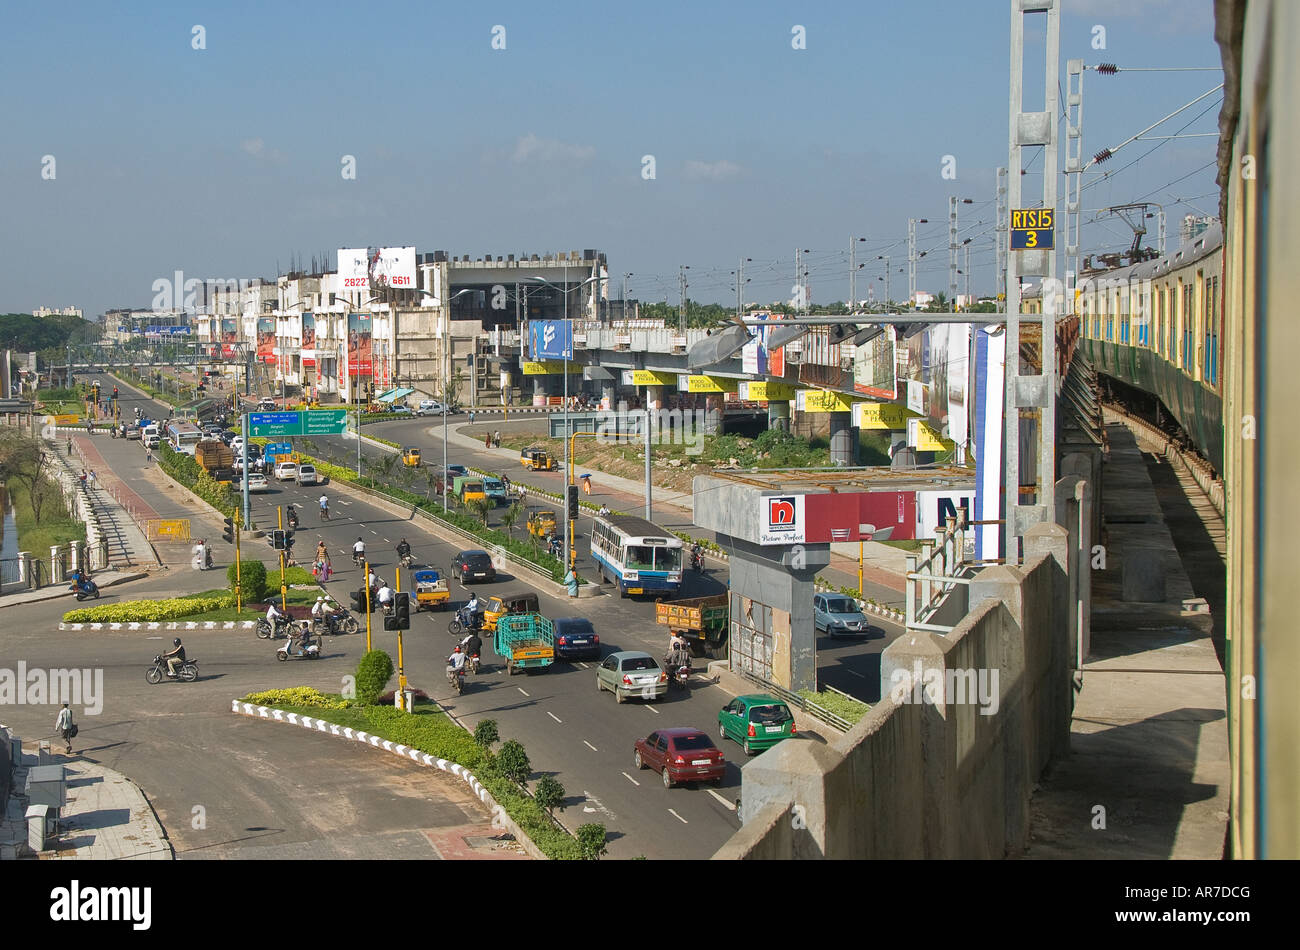 I T corridor served by a new road and overground rail network in Chennai Tamil Nadu India - Stock Image